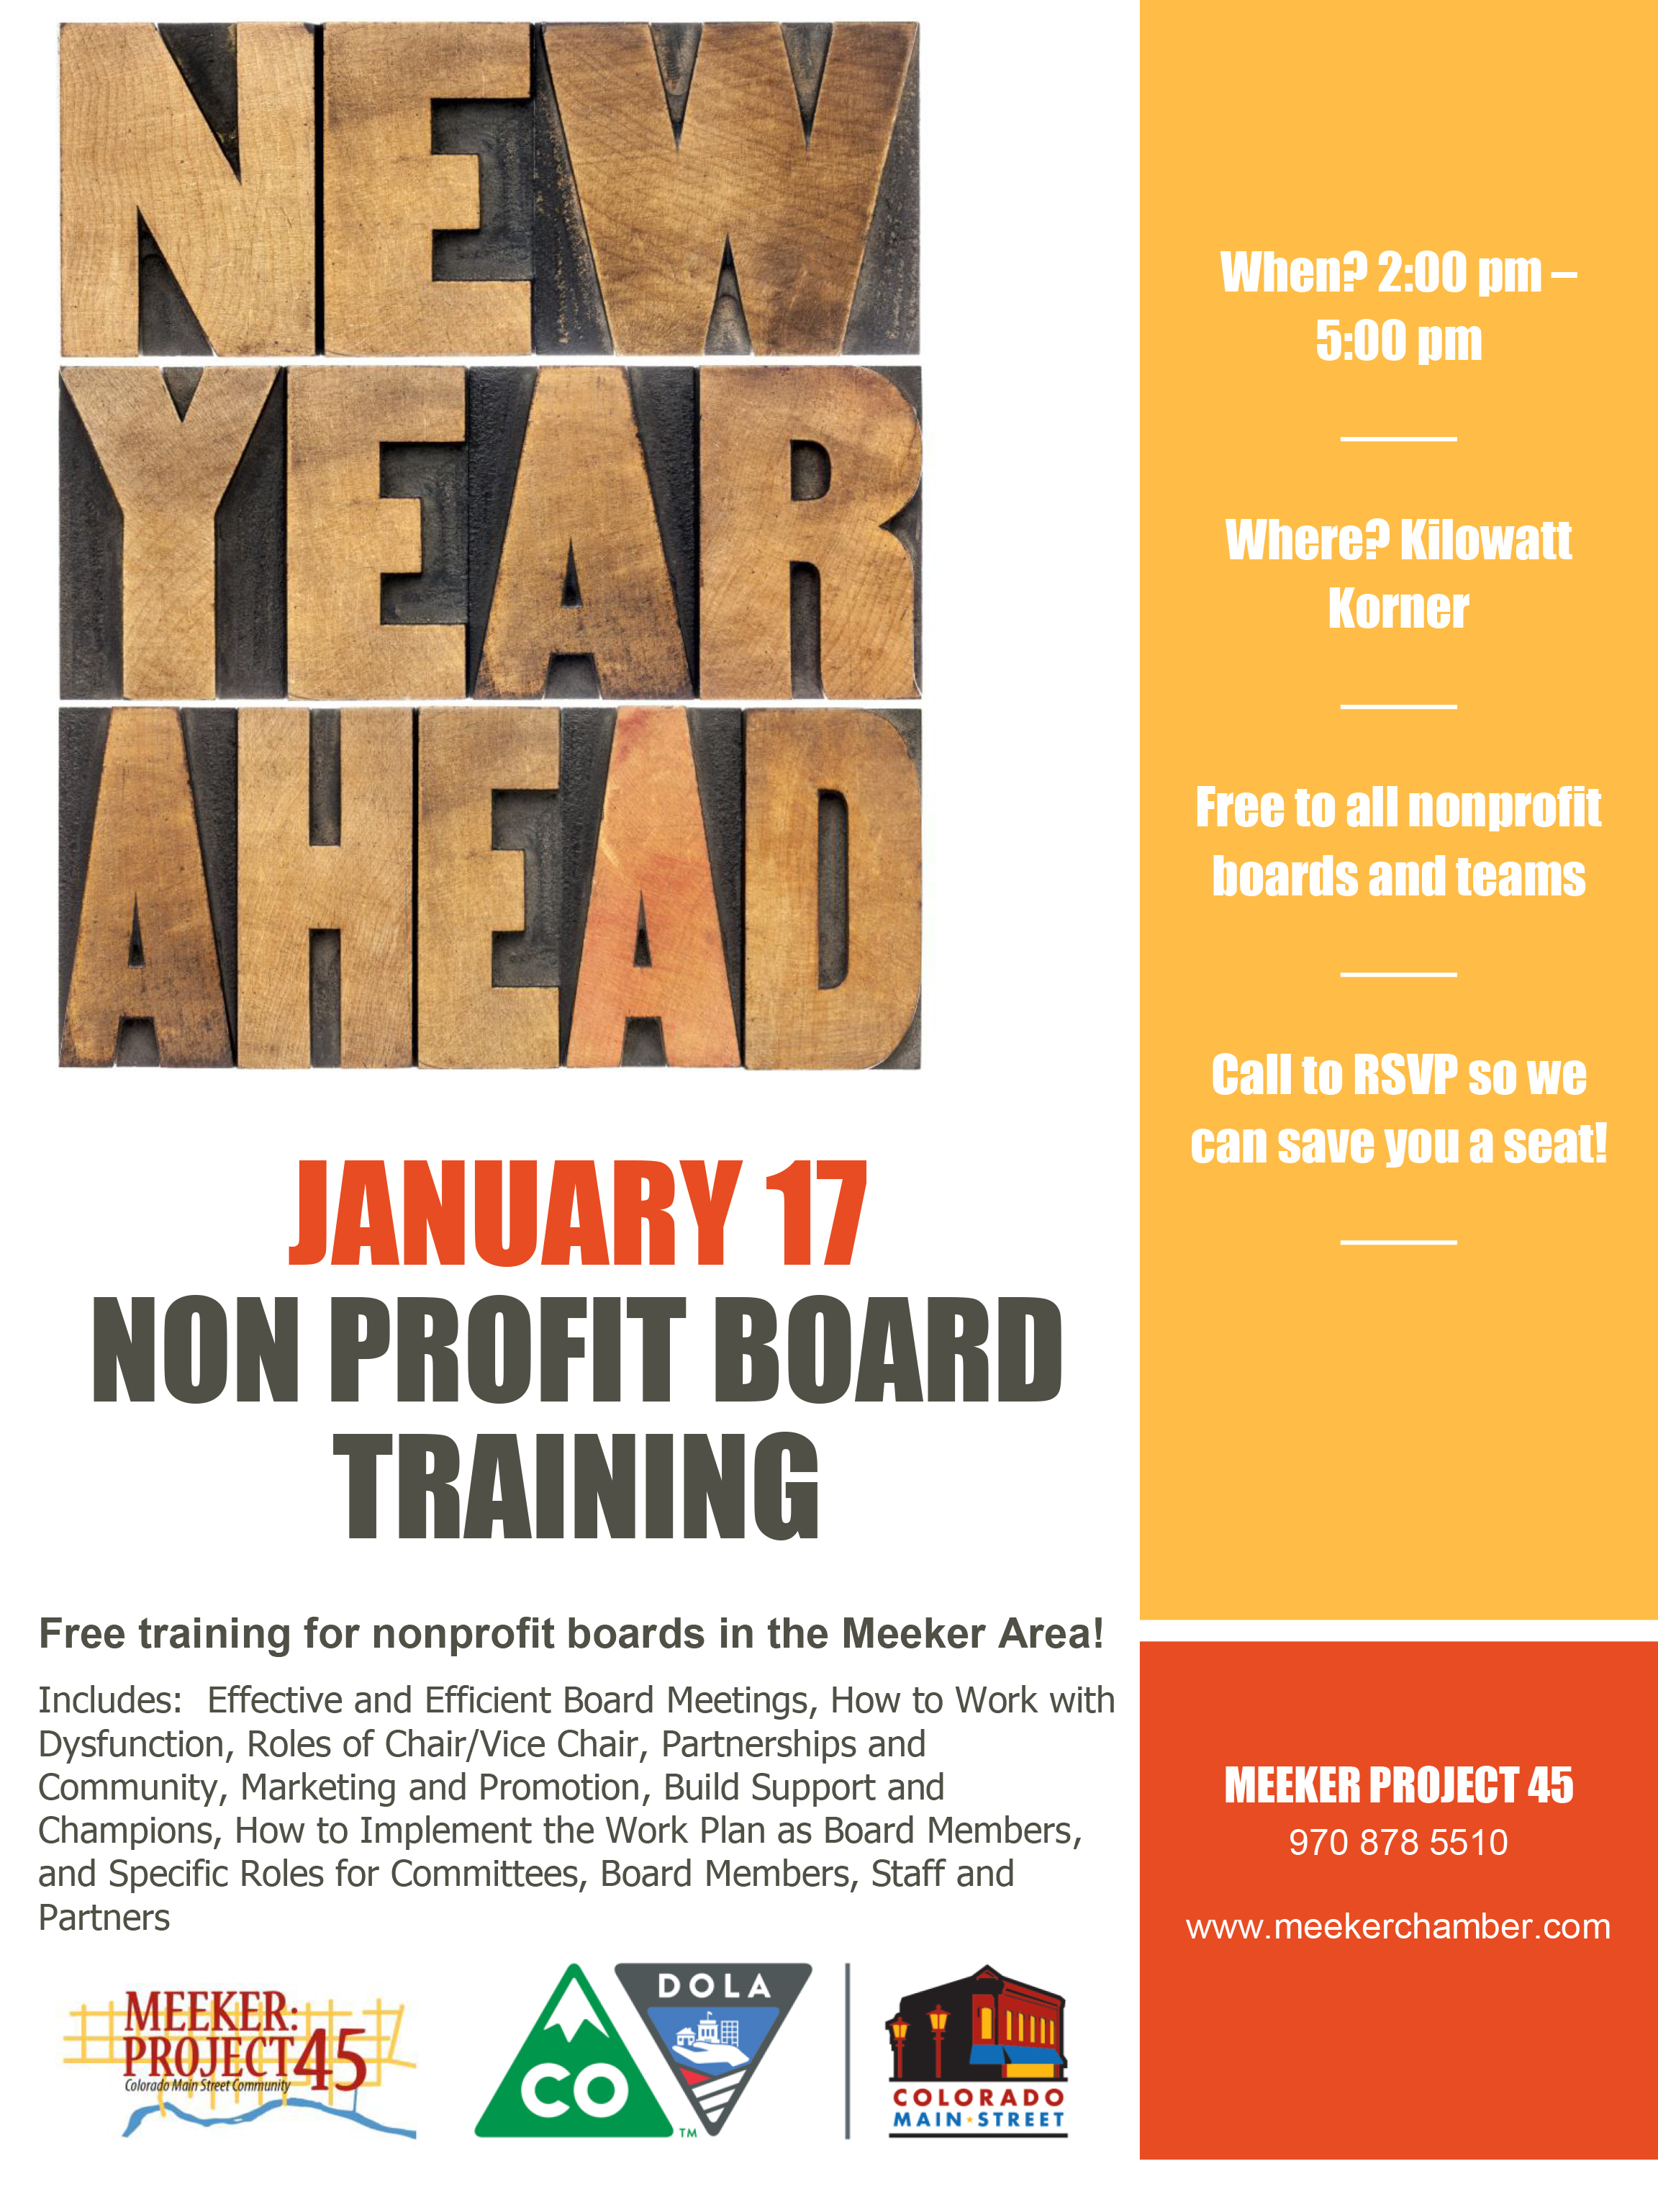 Meeker Chamber of Commerce - FREE Training for non-profit boards